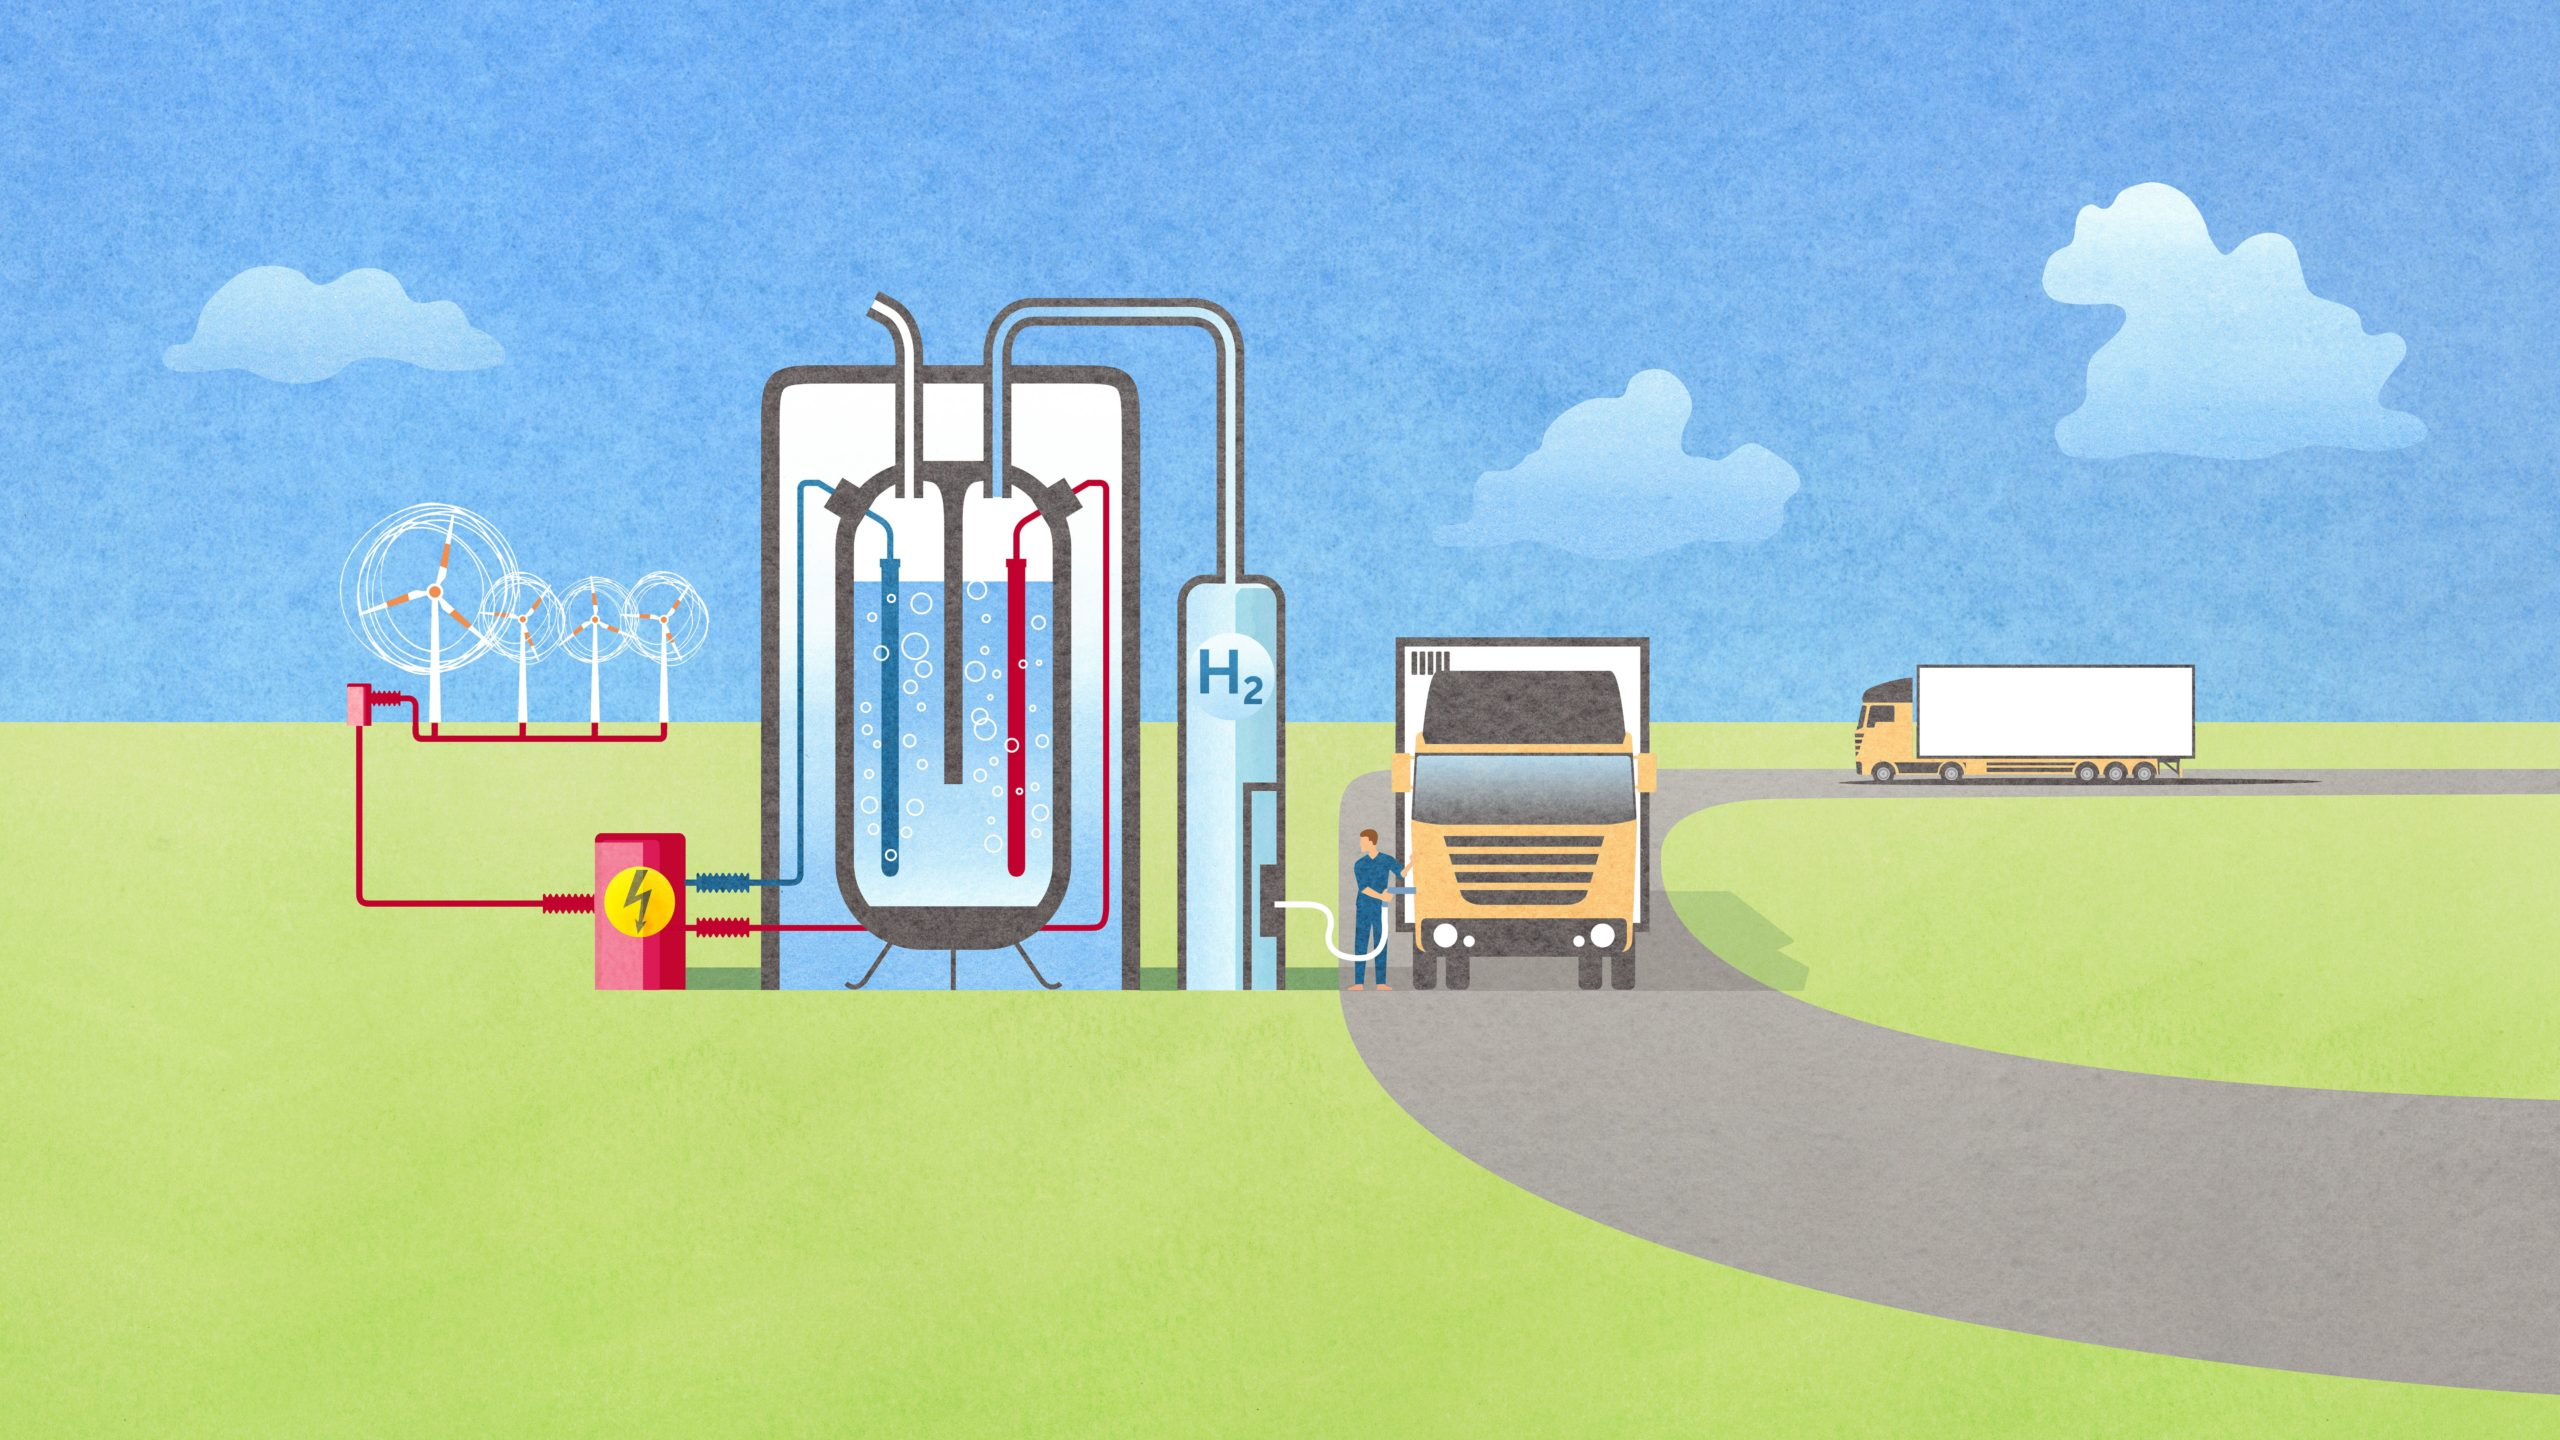 Hydrogen market ramp-up: energy suppliers take on a central role